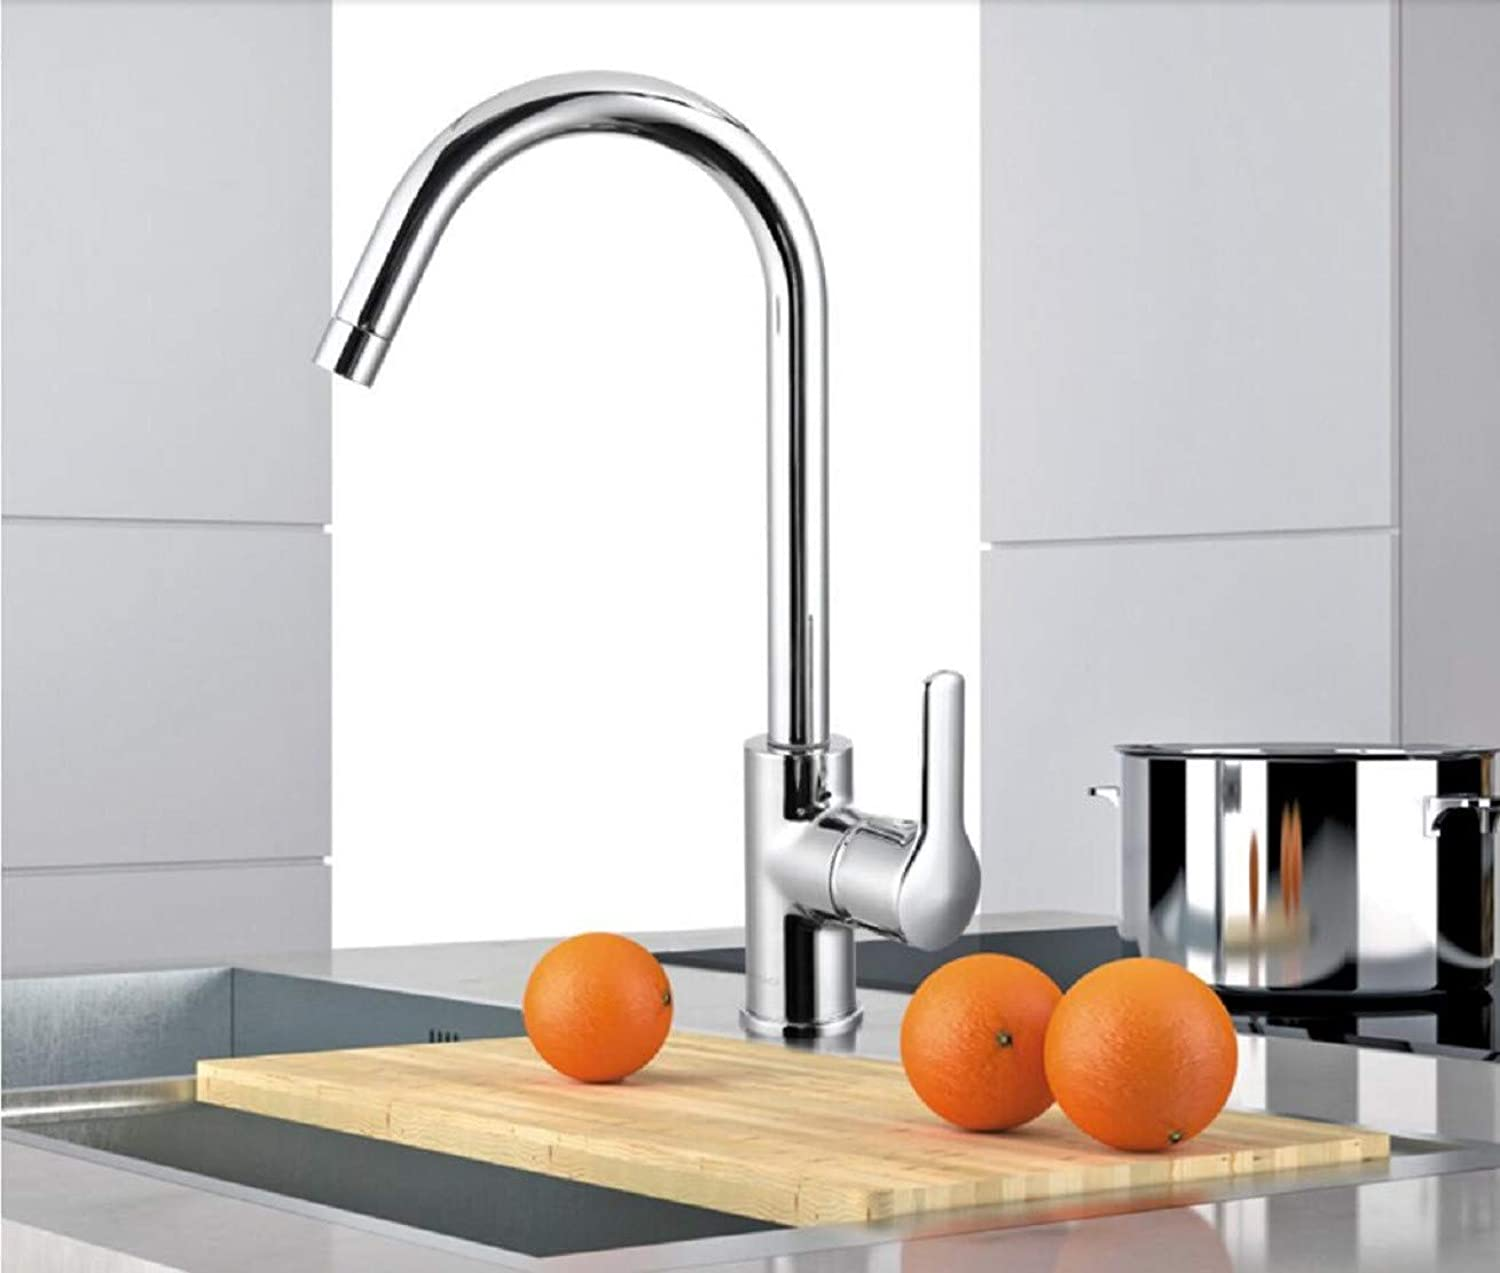 Kitchen Tap Sink Cold Hot Faucet Double Tank Washing Basin Faucet Kitchen Taps Kitchen Sink Mixer Taps Basin Tap